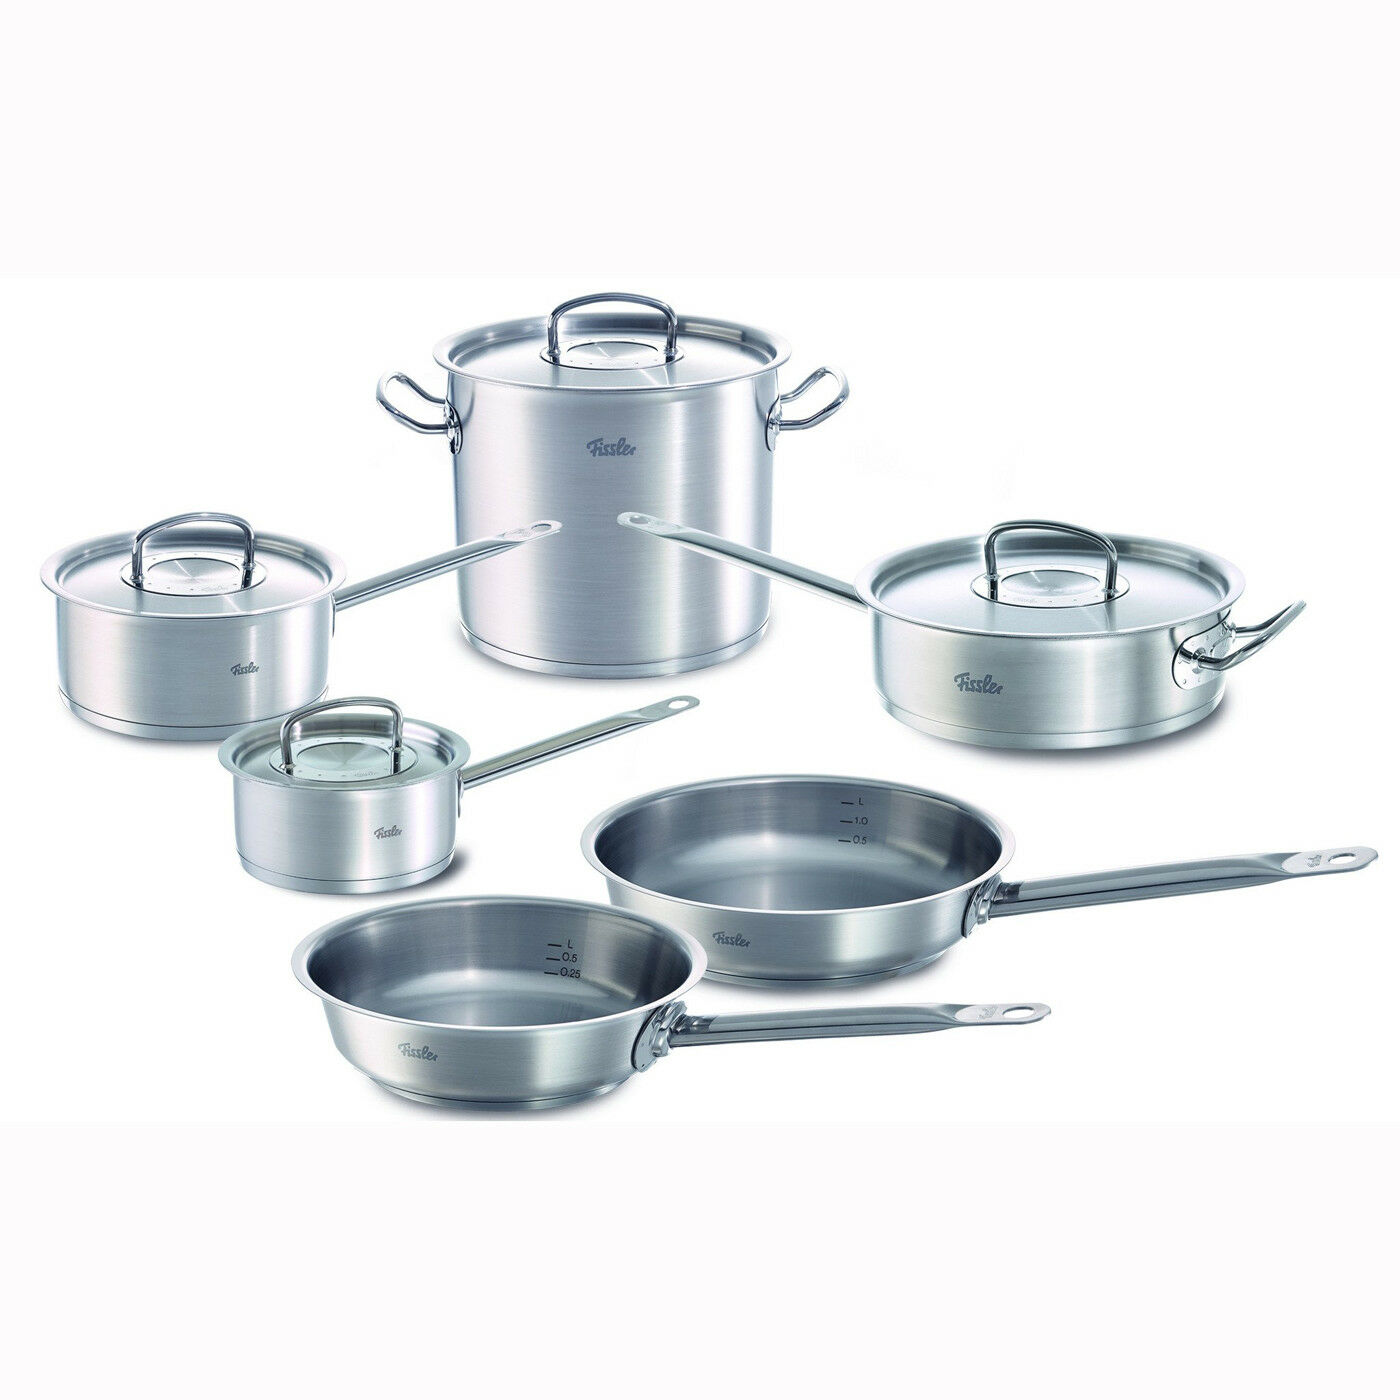 Fissler 10 pc Original Profi Stainless Steel Cookware Set